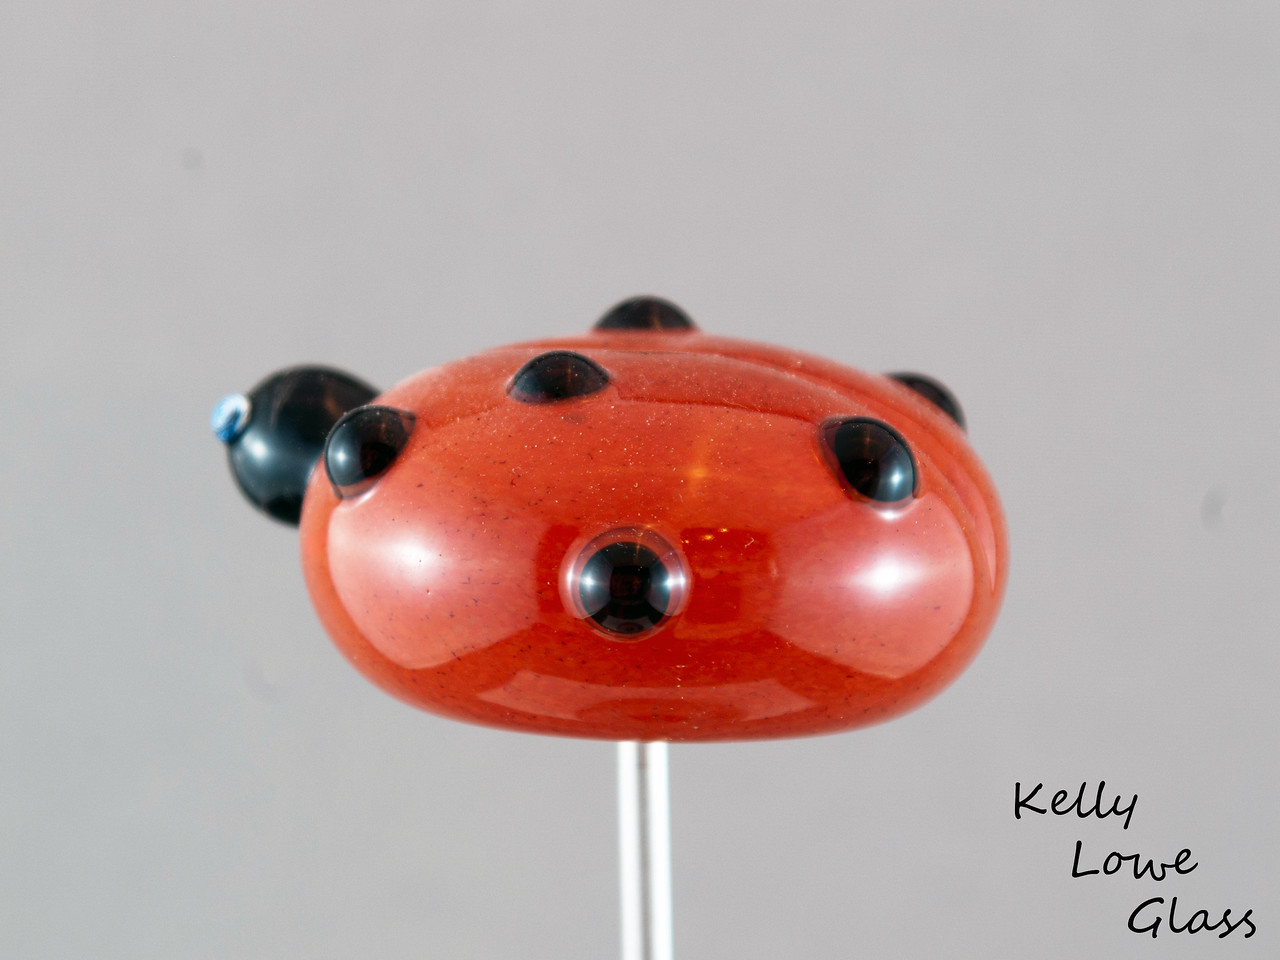 Ladybug - Picture 2/2: